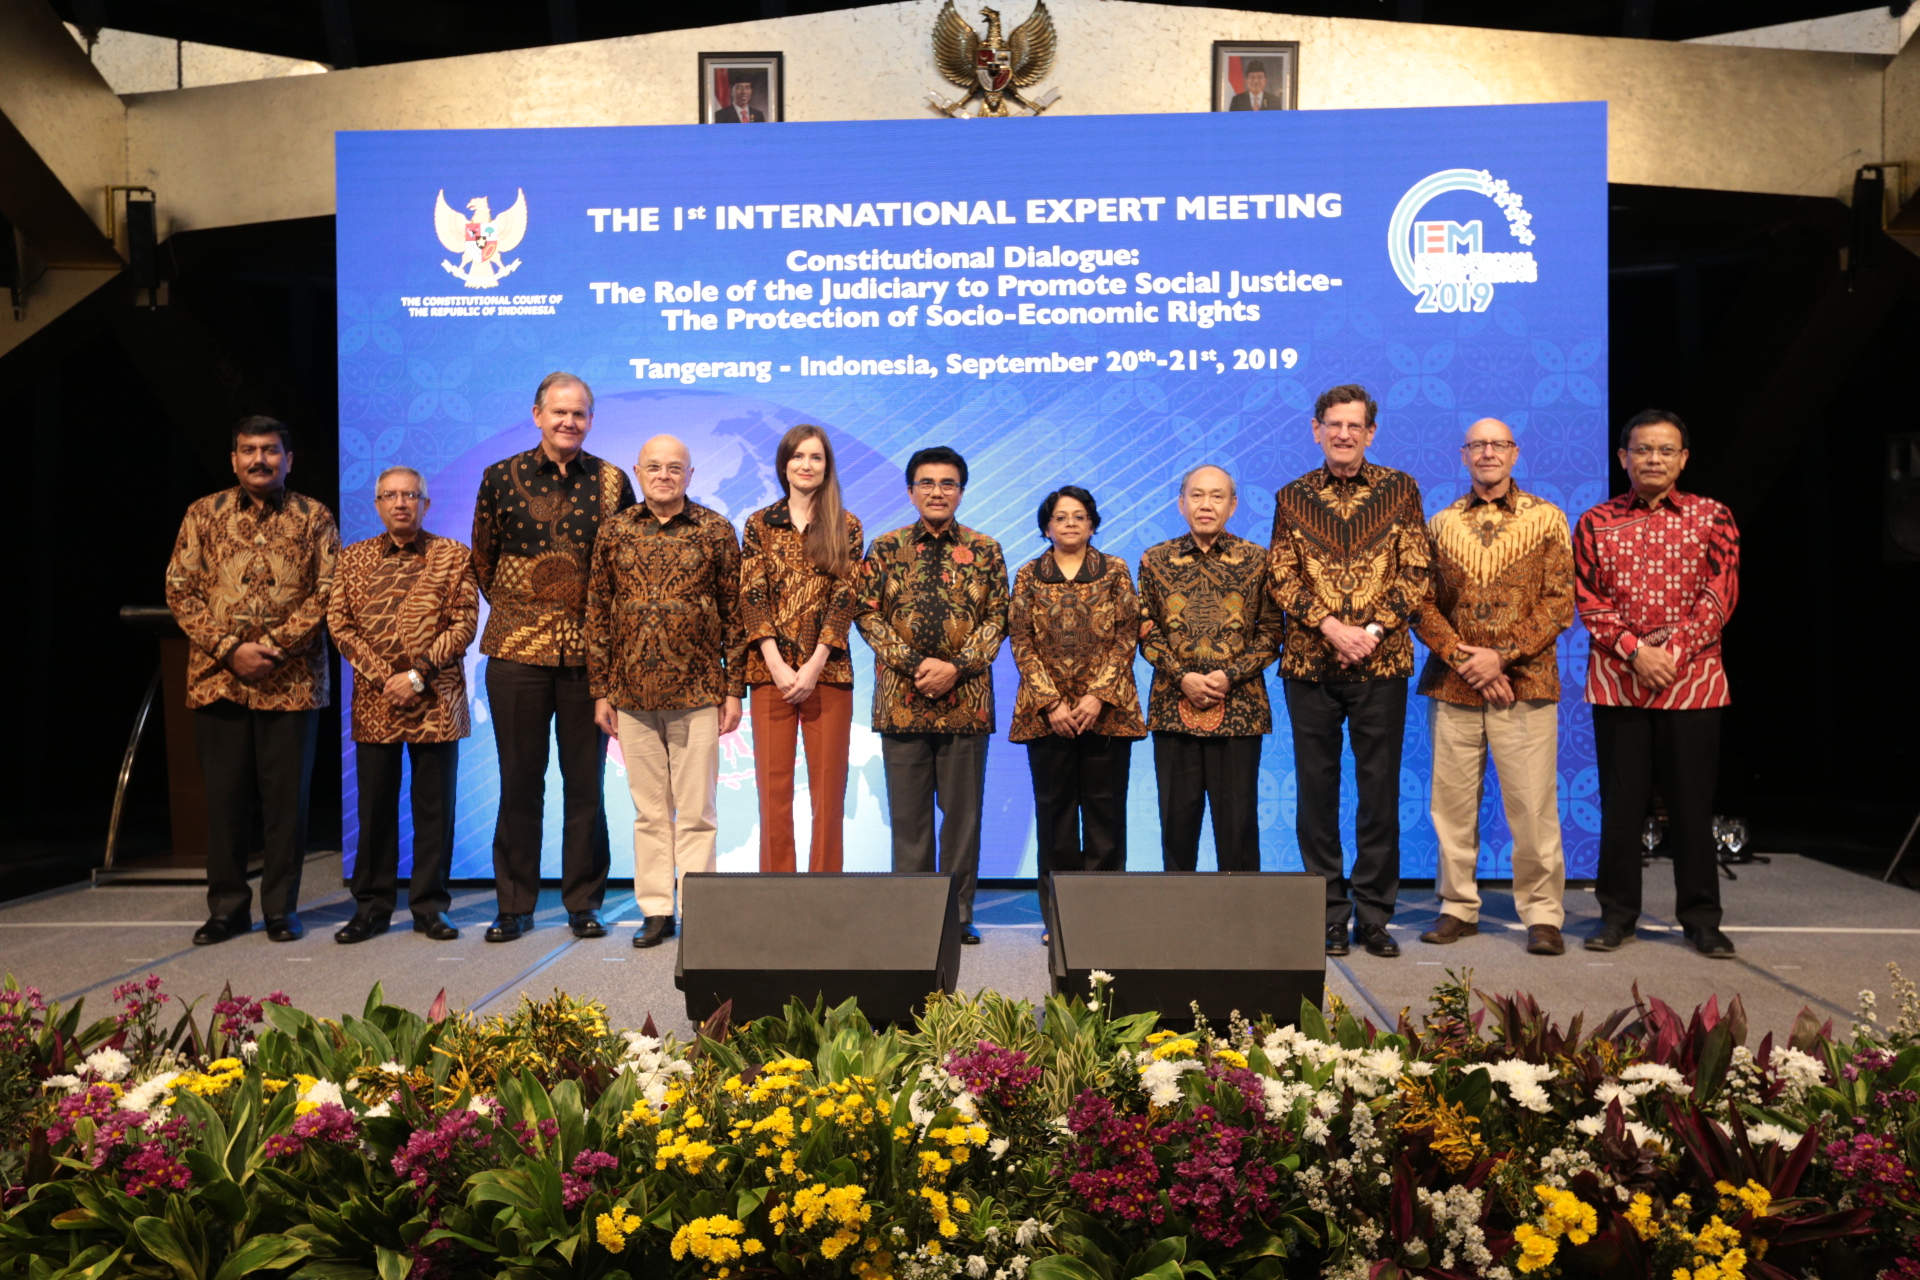 The Constitutional Court of the Republic of Indonesia conducted the 1st International Expert Meeting